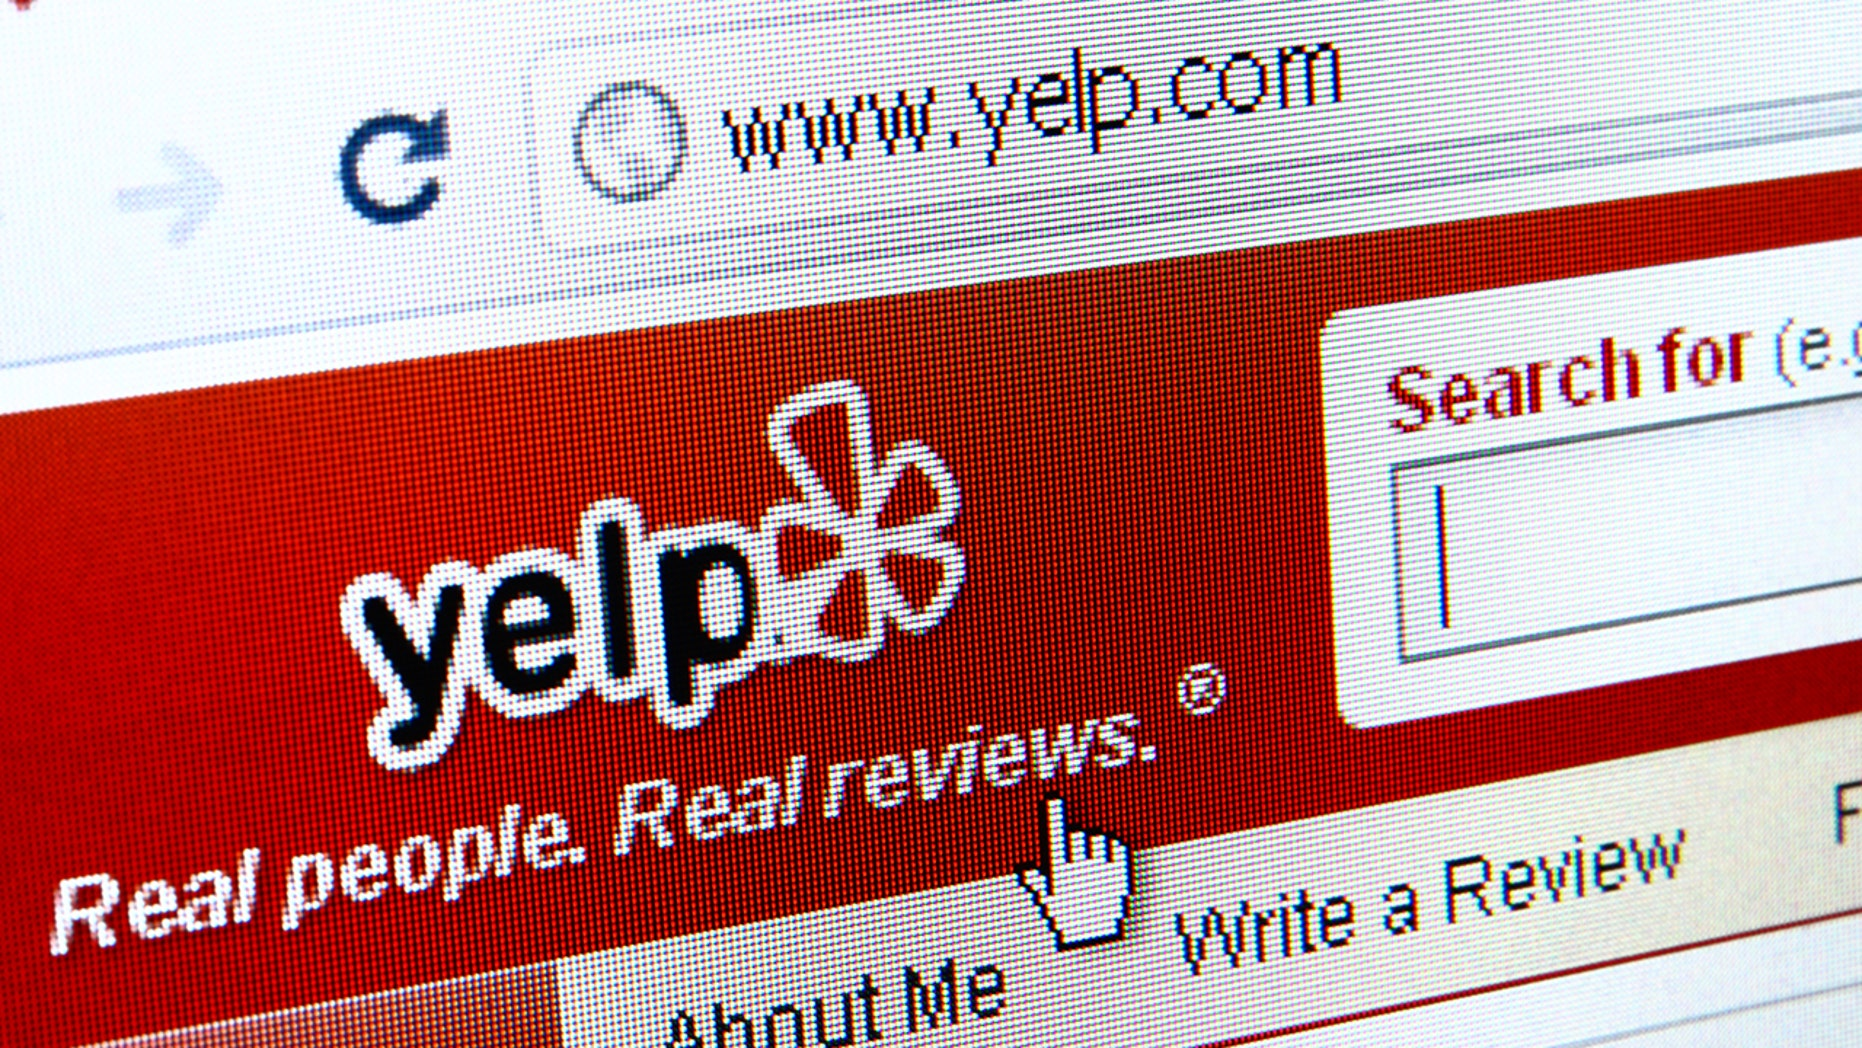 A BU professor is under fire for a now-deleted Yelp review he wrote criticizing restaurant employees for their weight.